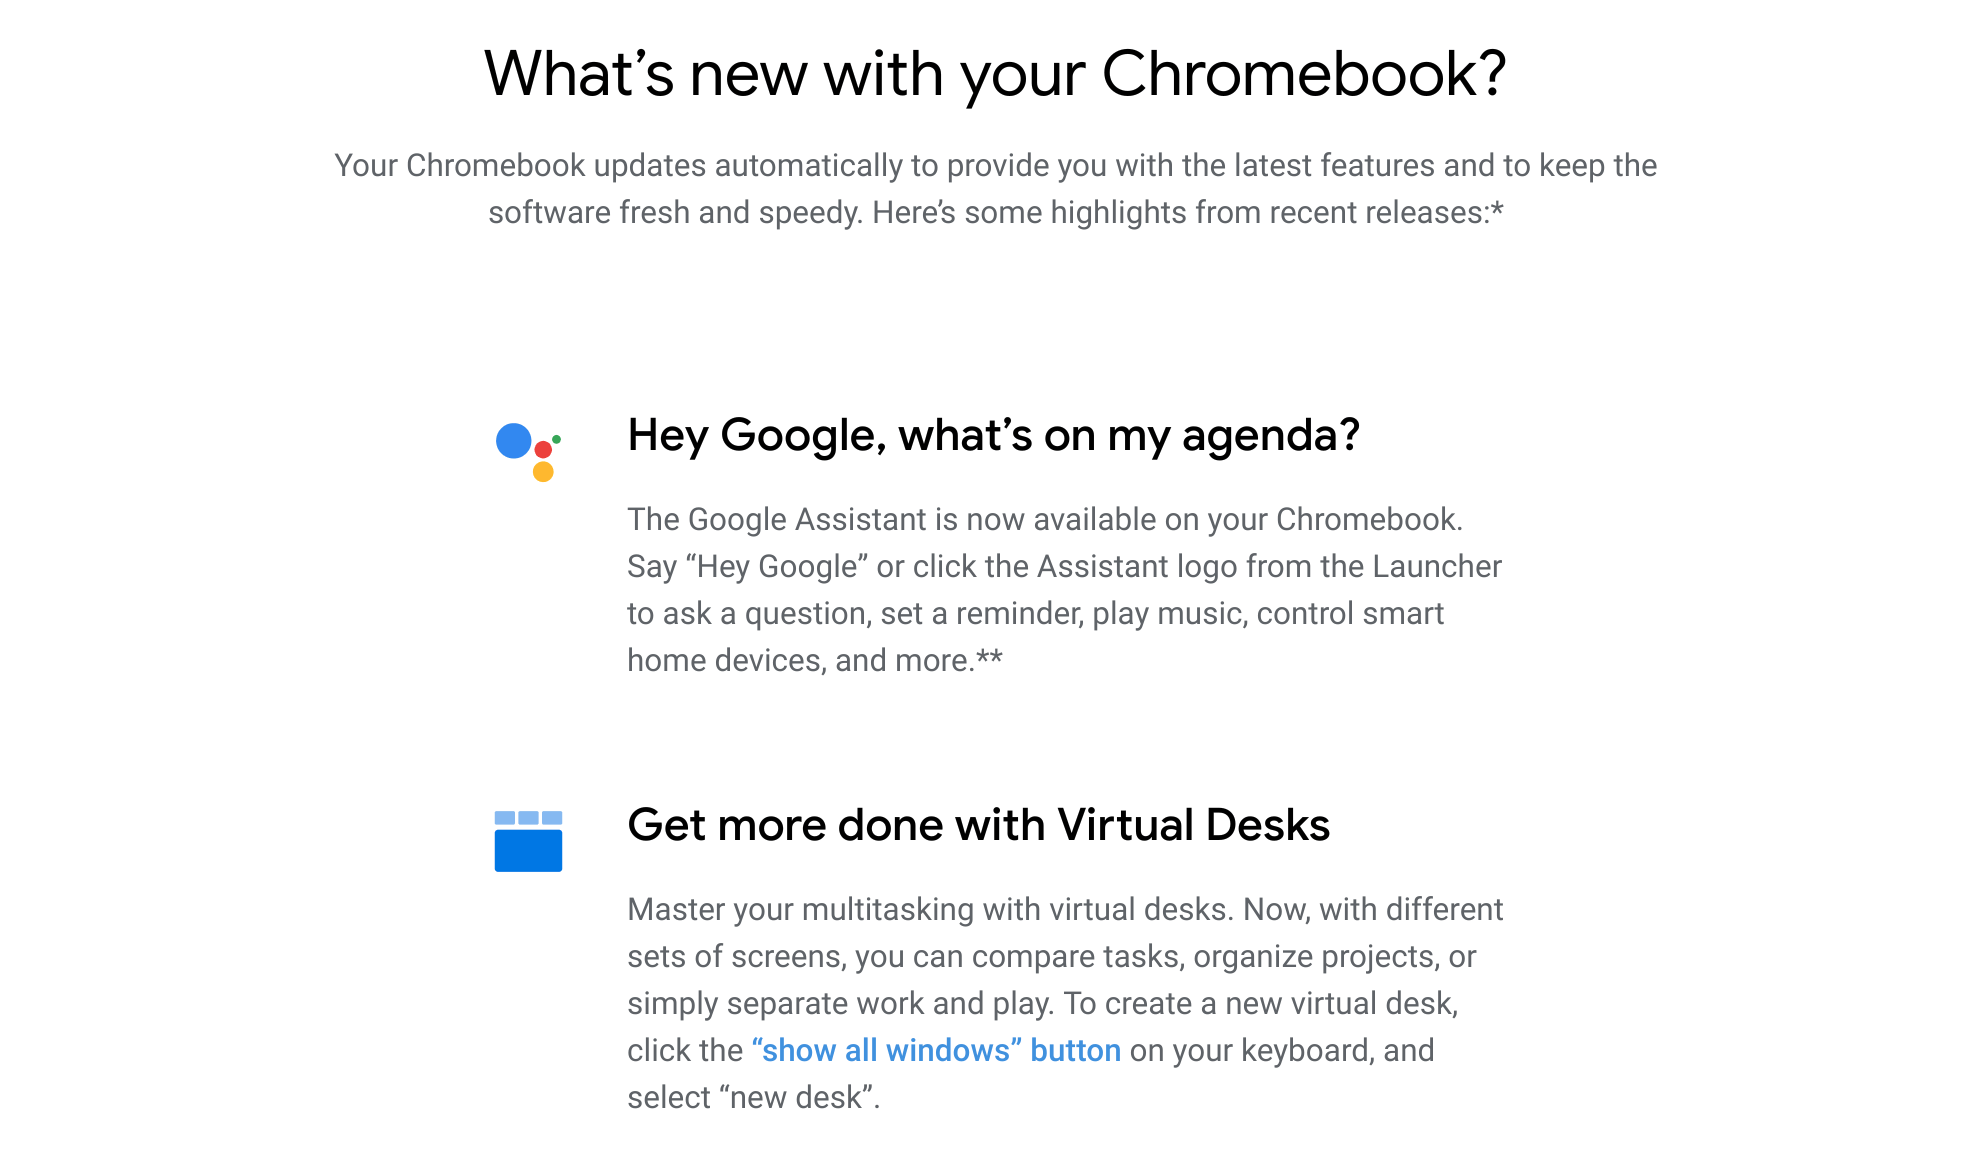 The new Chrome OS release notes on Chromebooks are already old